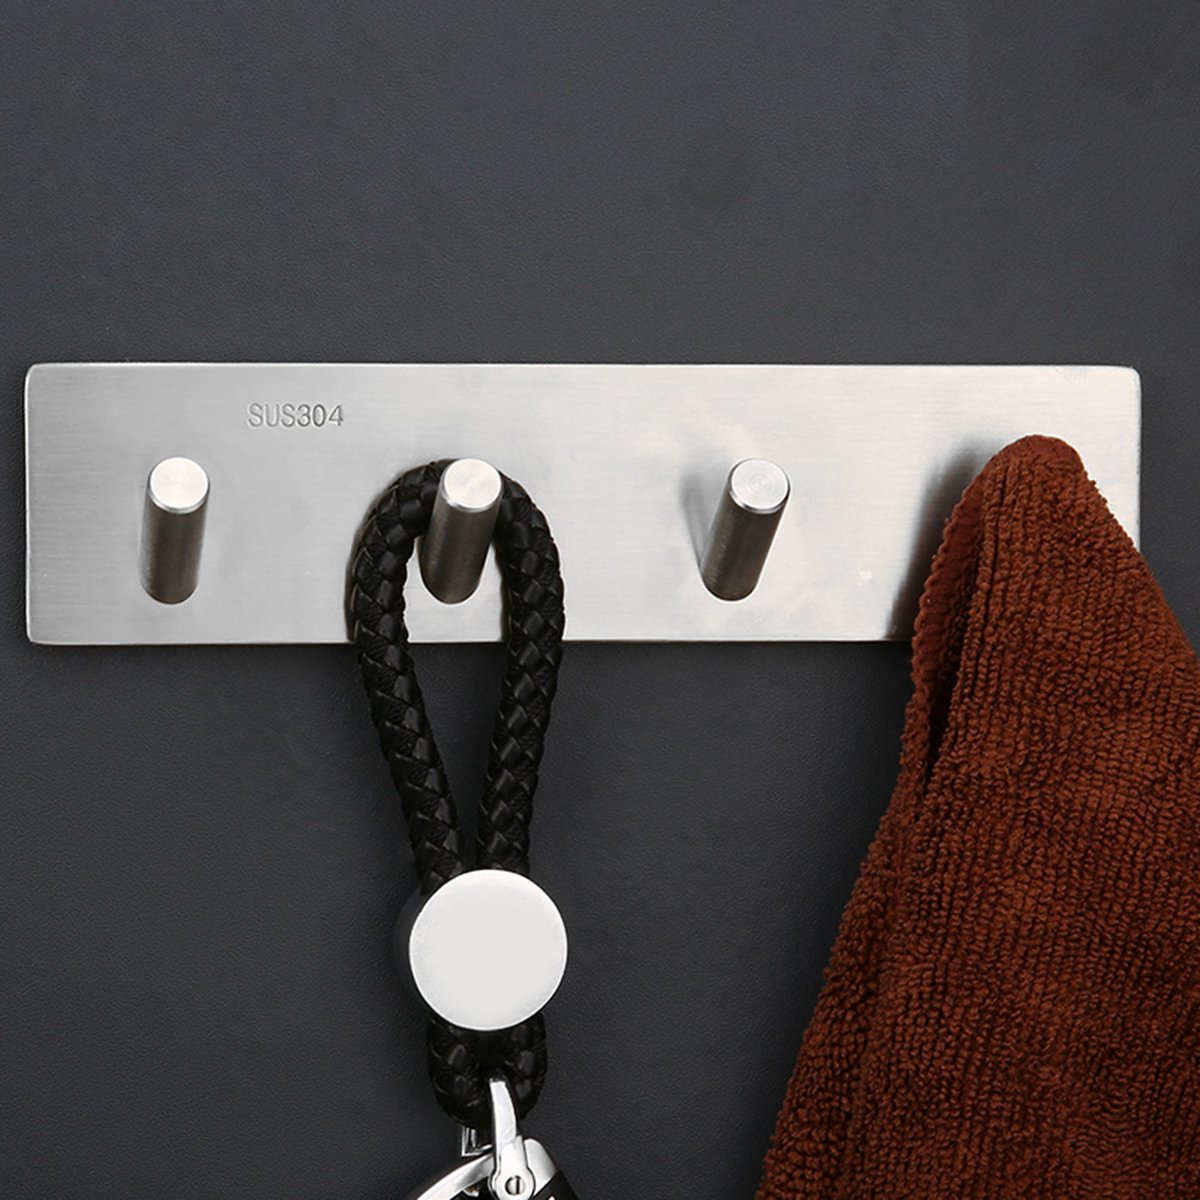 Kitchen Self Adhesive Sticky Hook Home Door Wall Hanger Rack for Towel Clothing